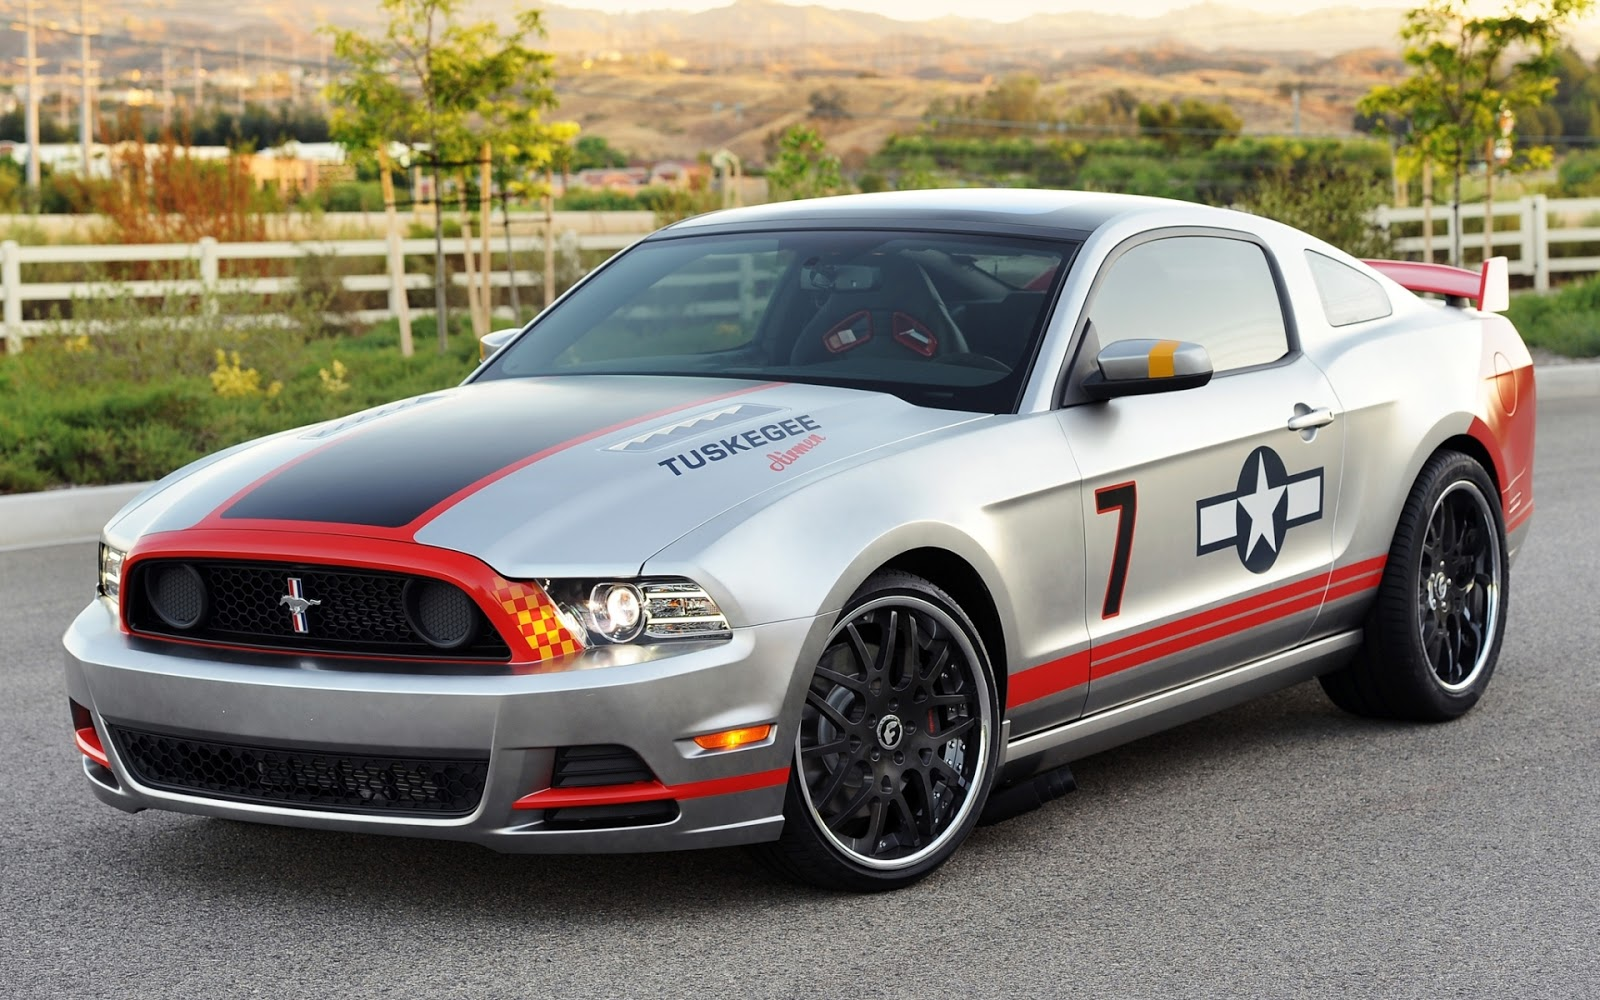 Ford ford gt ford mustang ford mustang gt ford mustang gt red tails